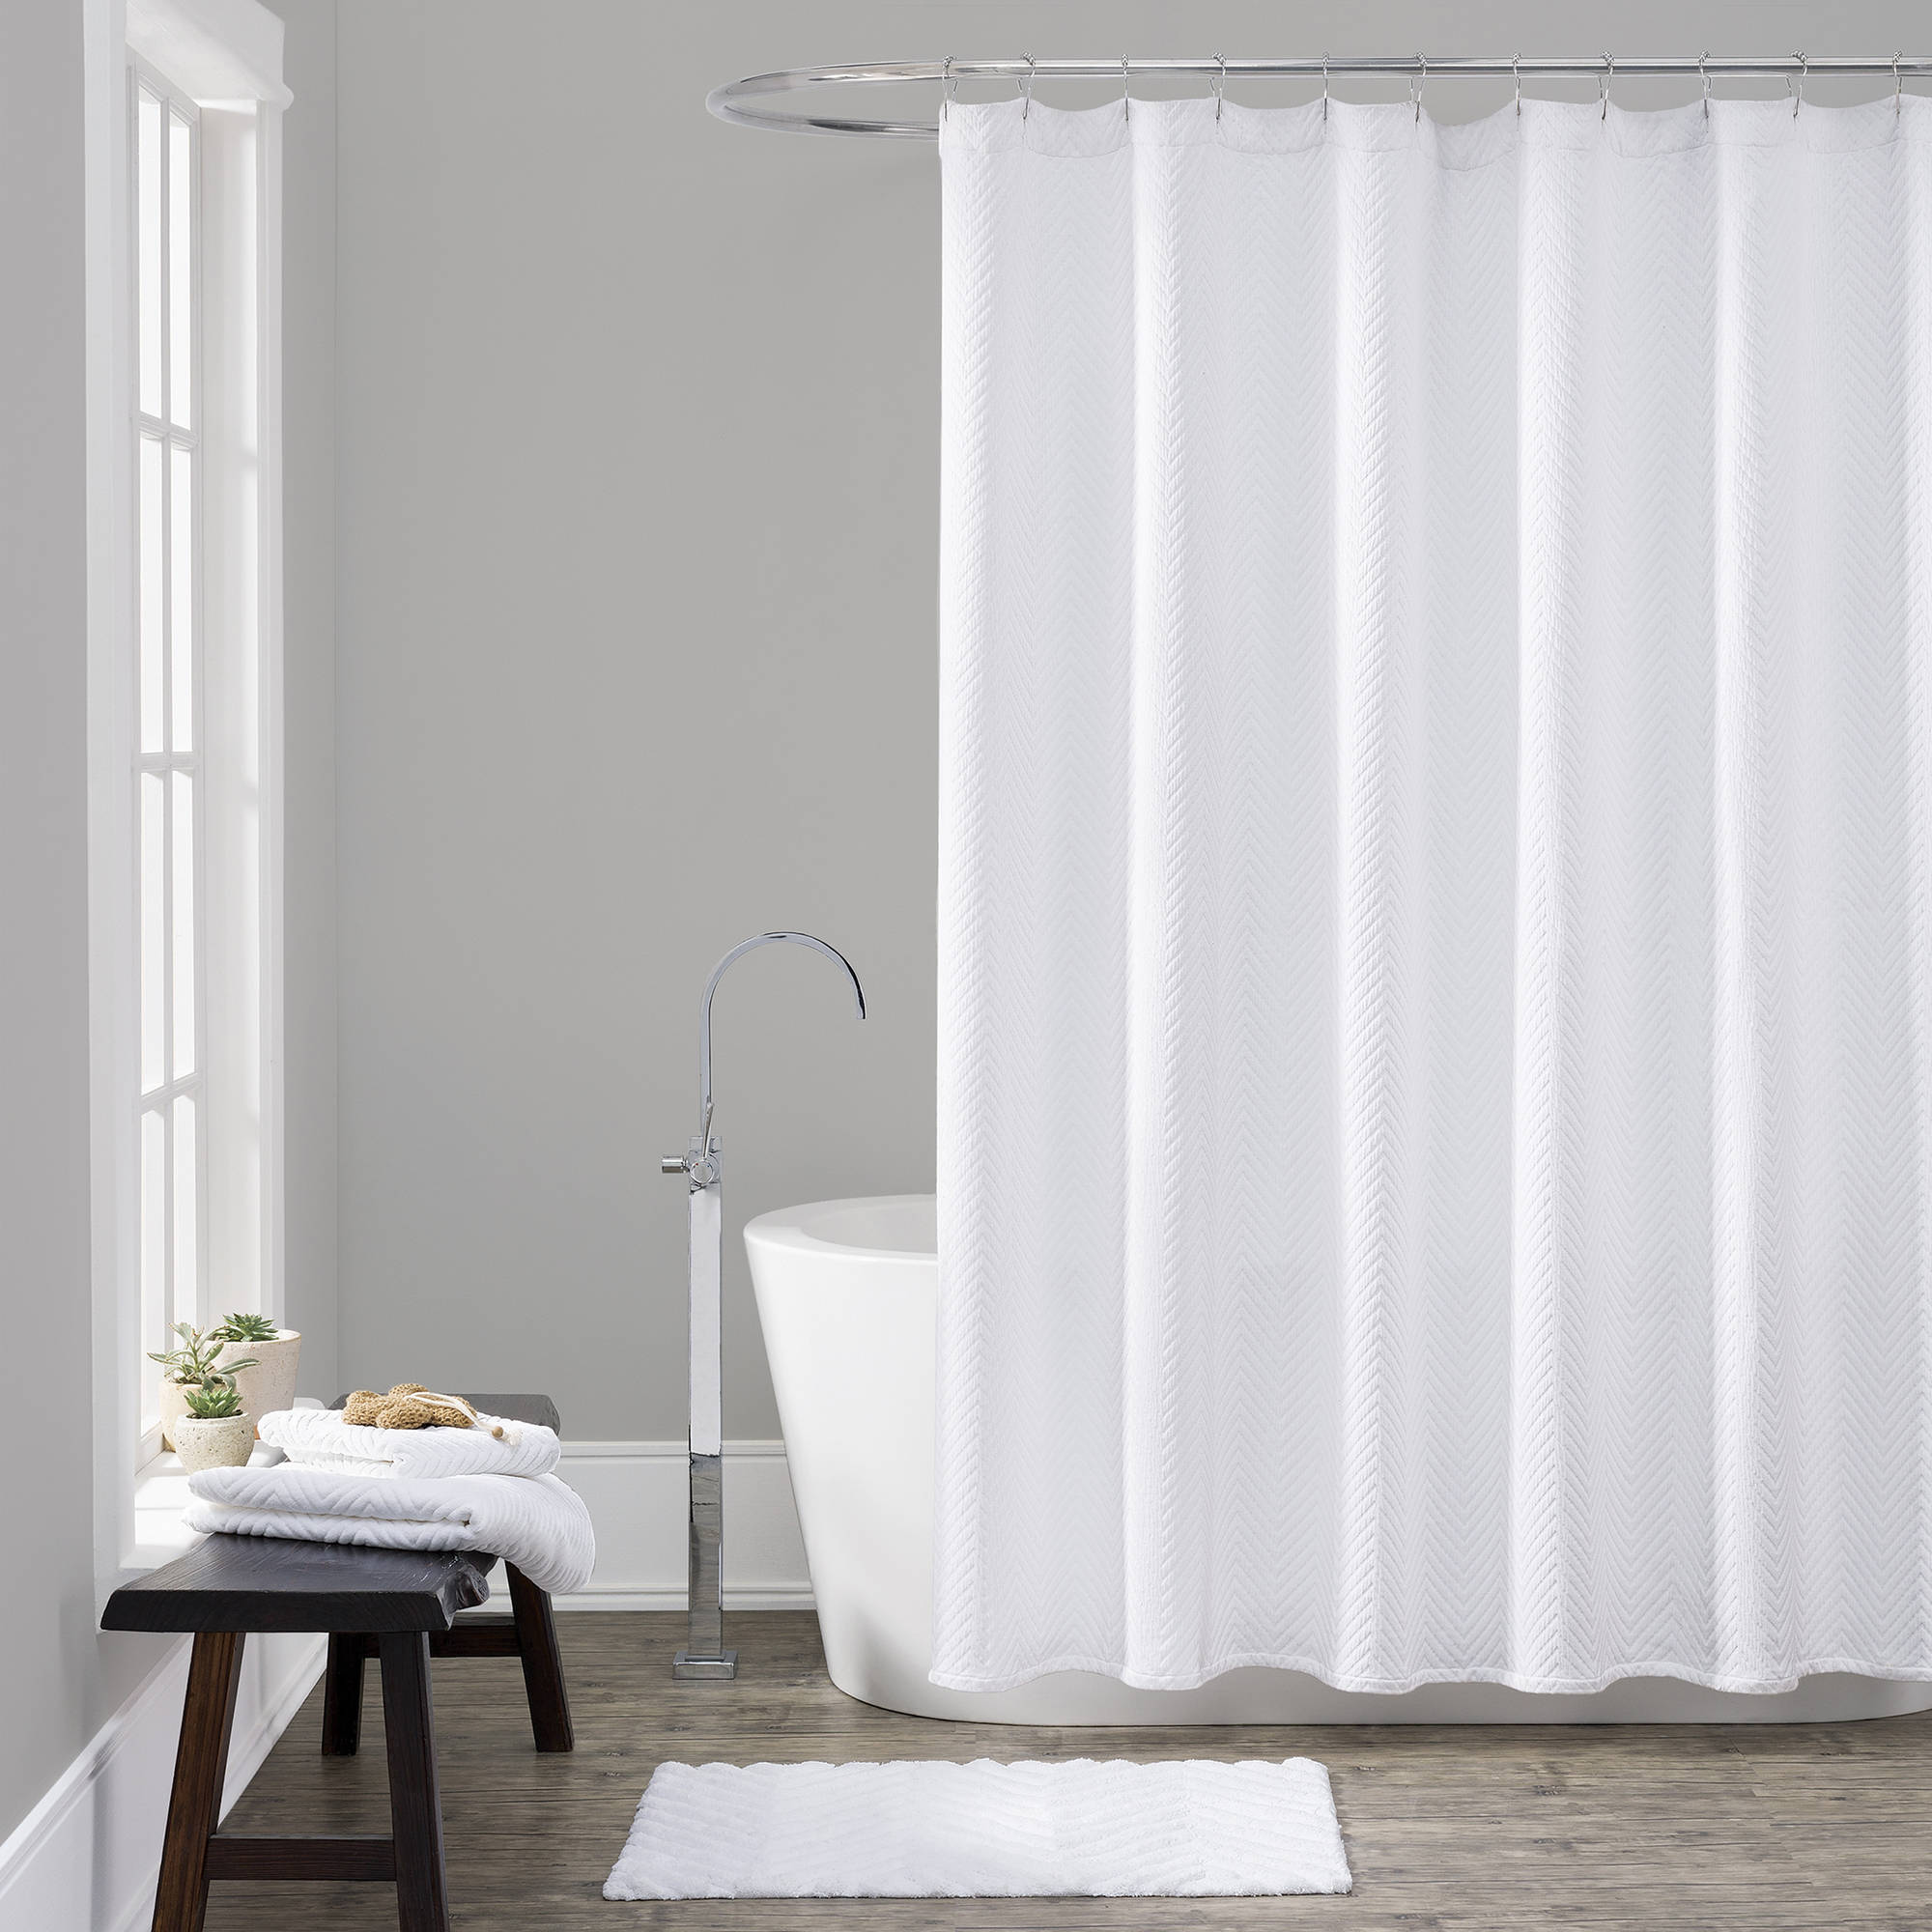 of liner picture curtain beautiful stall articles x shower with tag